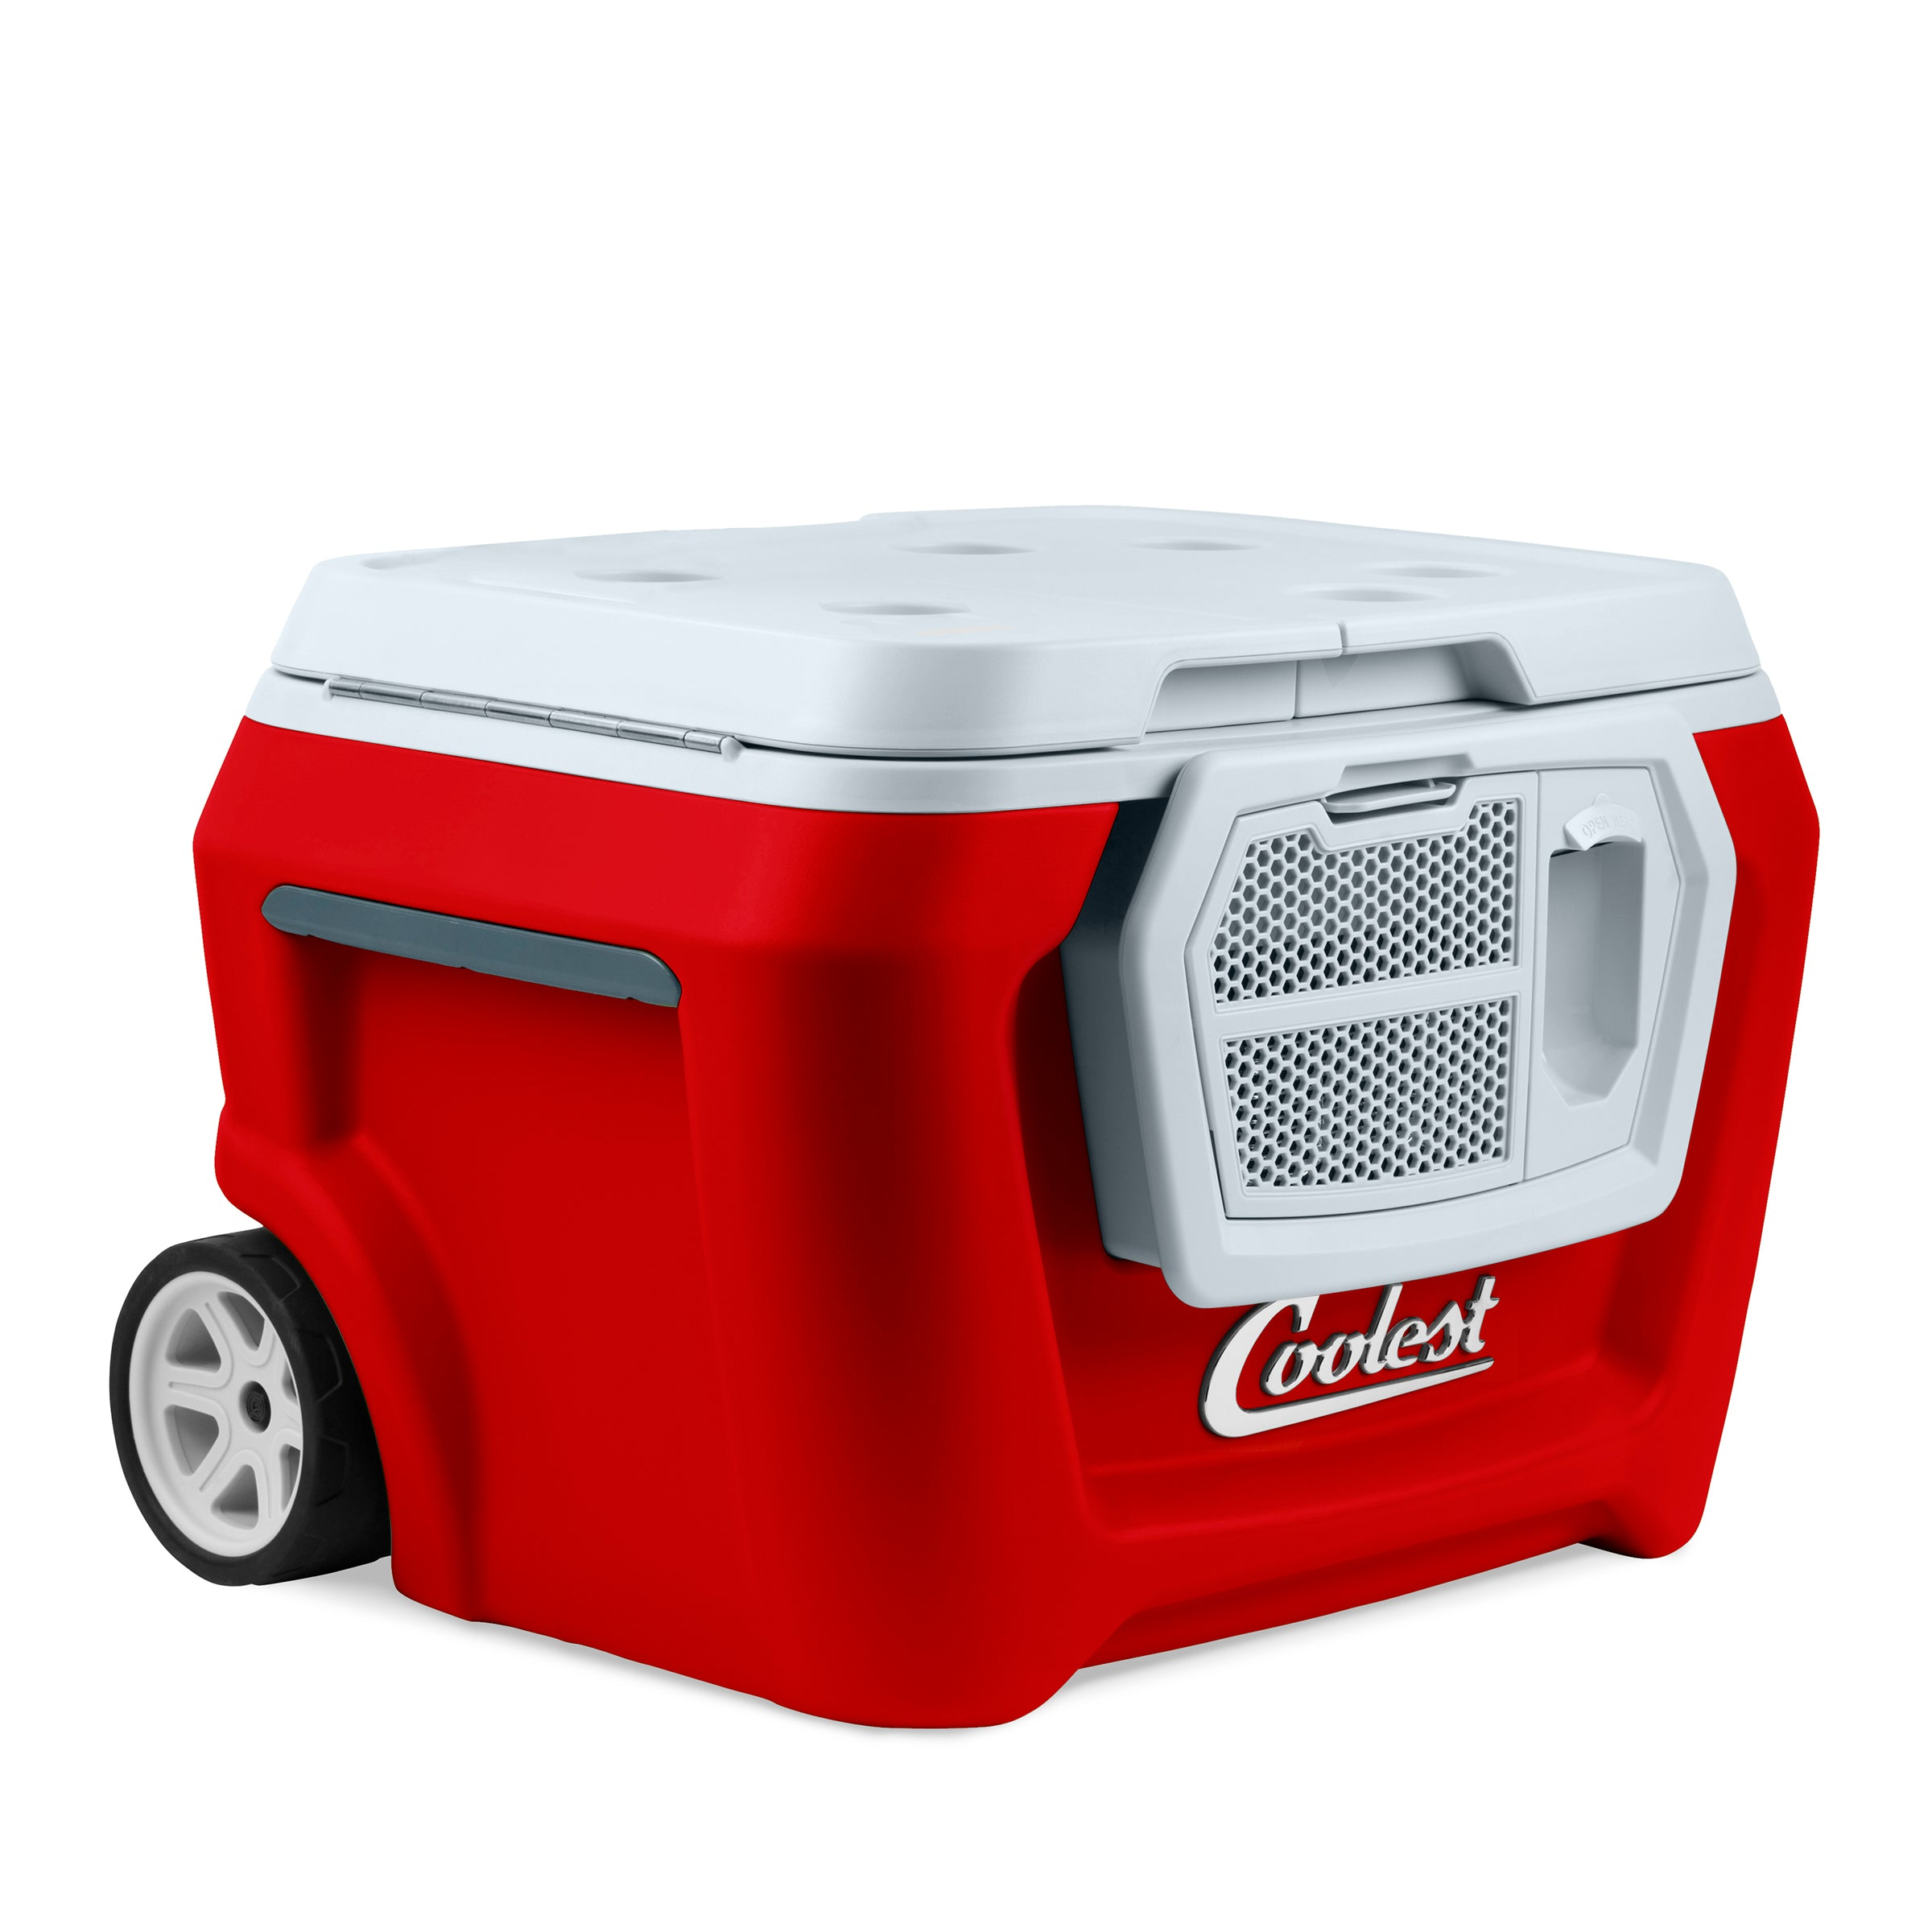 the coolest cooler finally a cooler that s actually cool